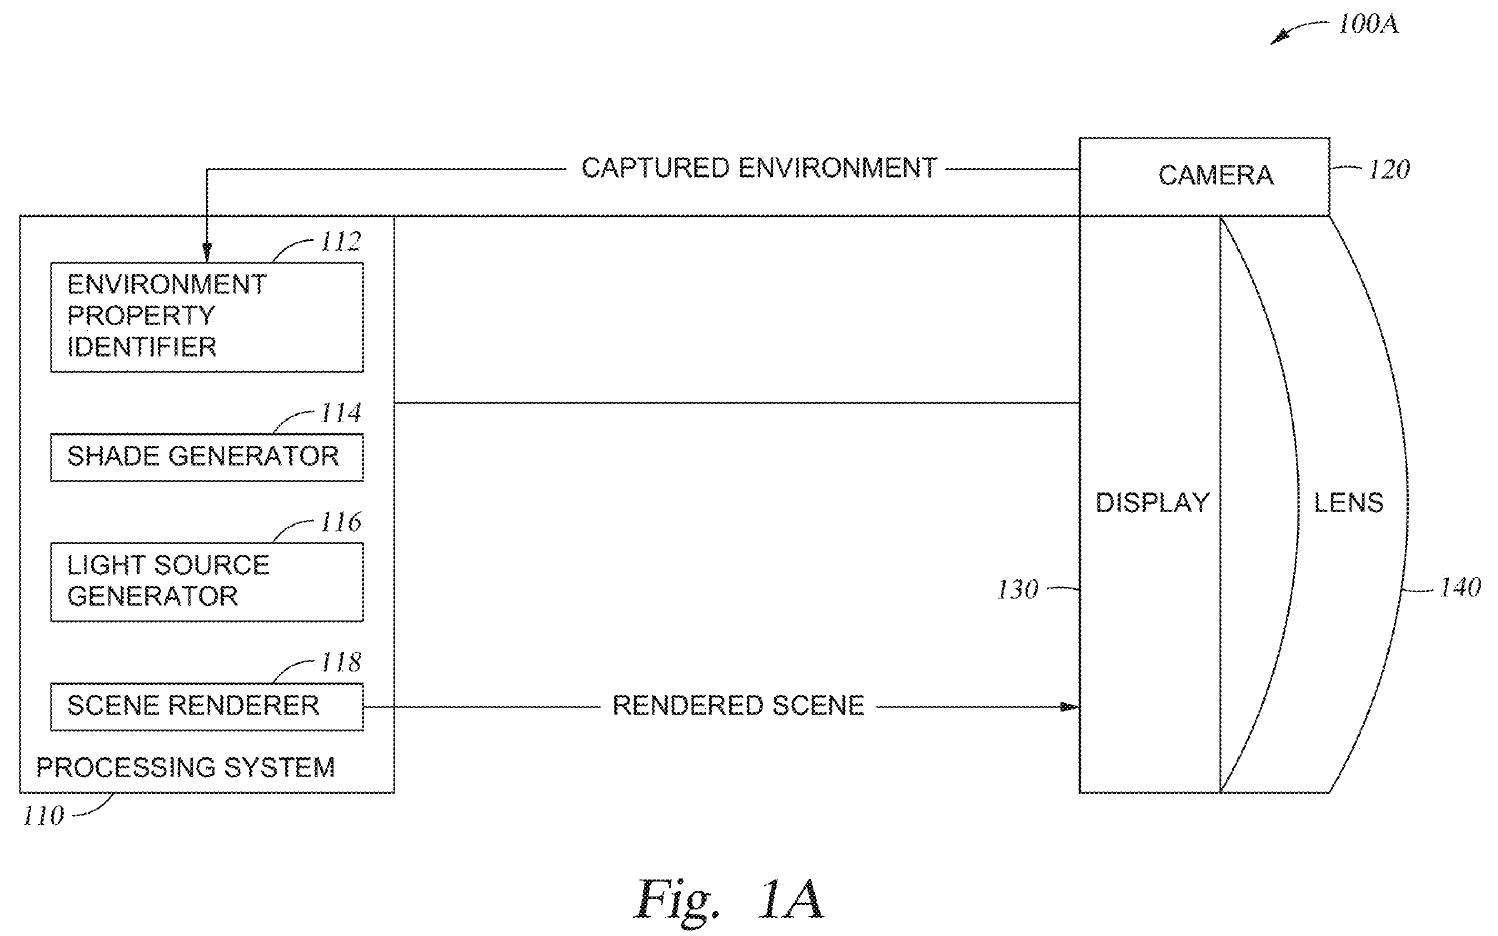 lighting-effects-augmented-reality-patent-1-1895394